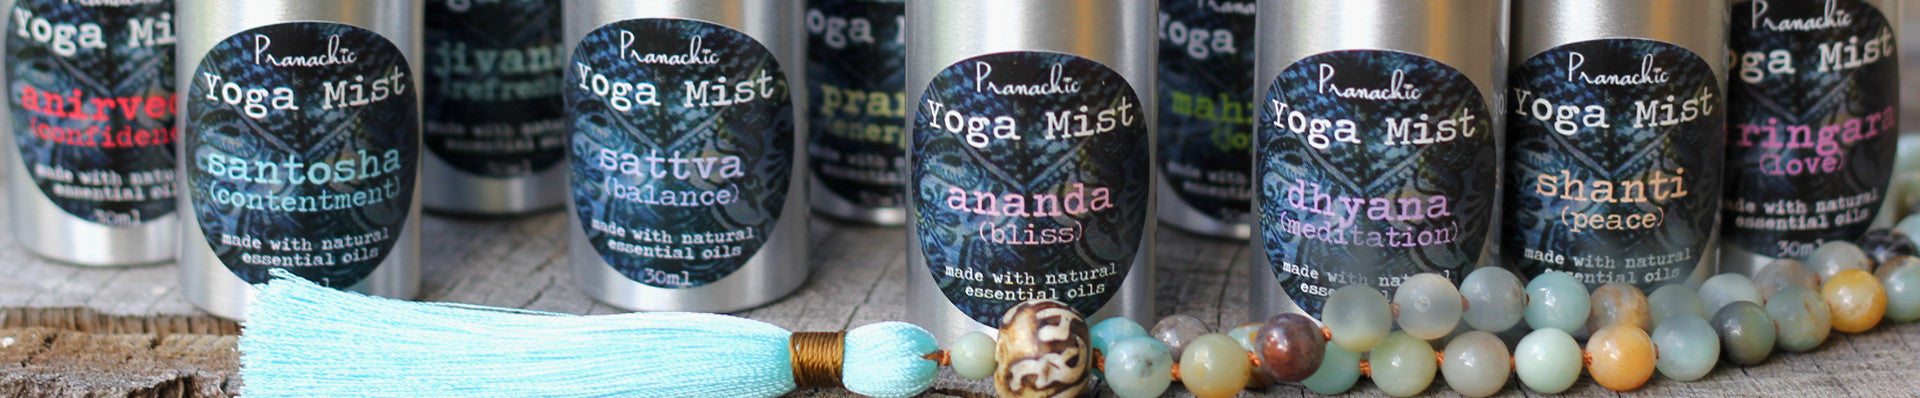 The Story of Pranachic Yoga Mists